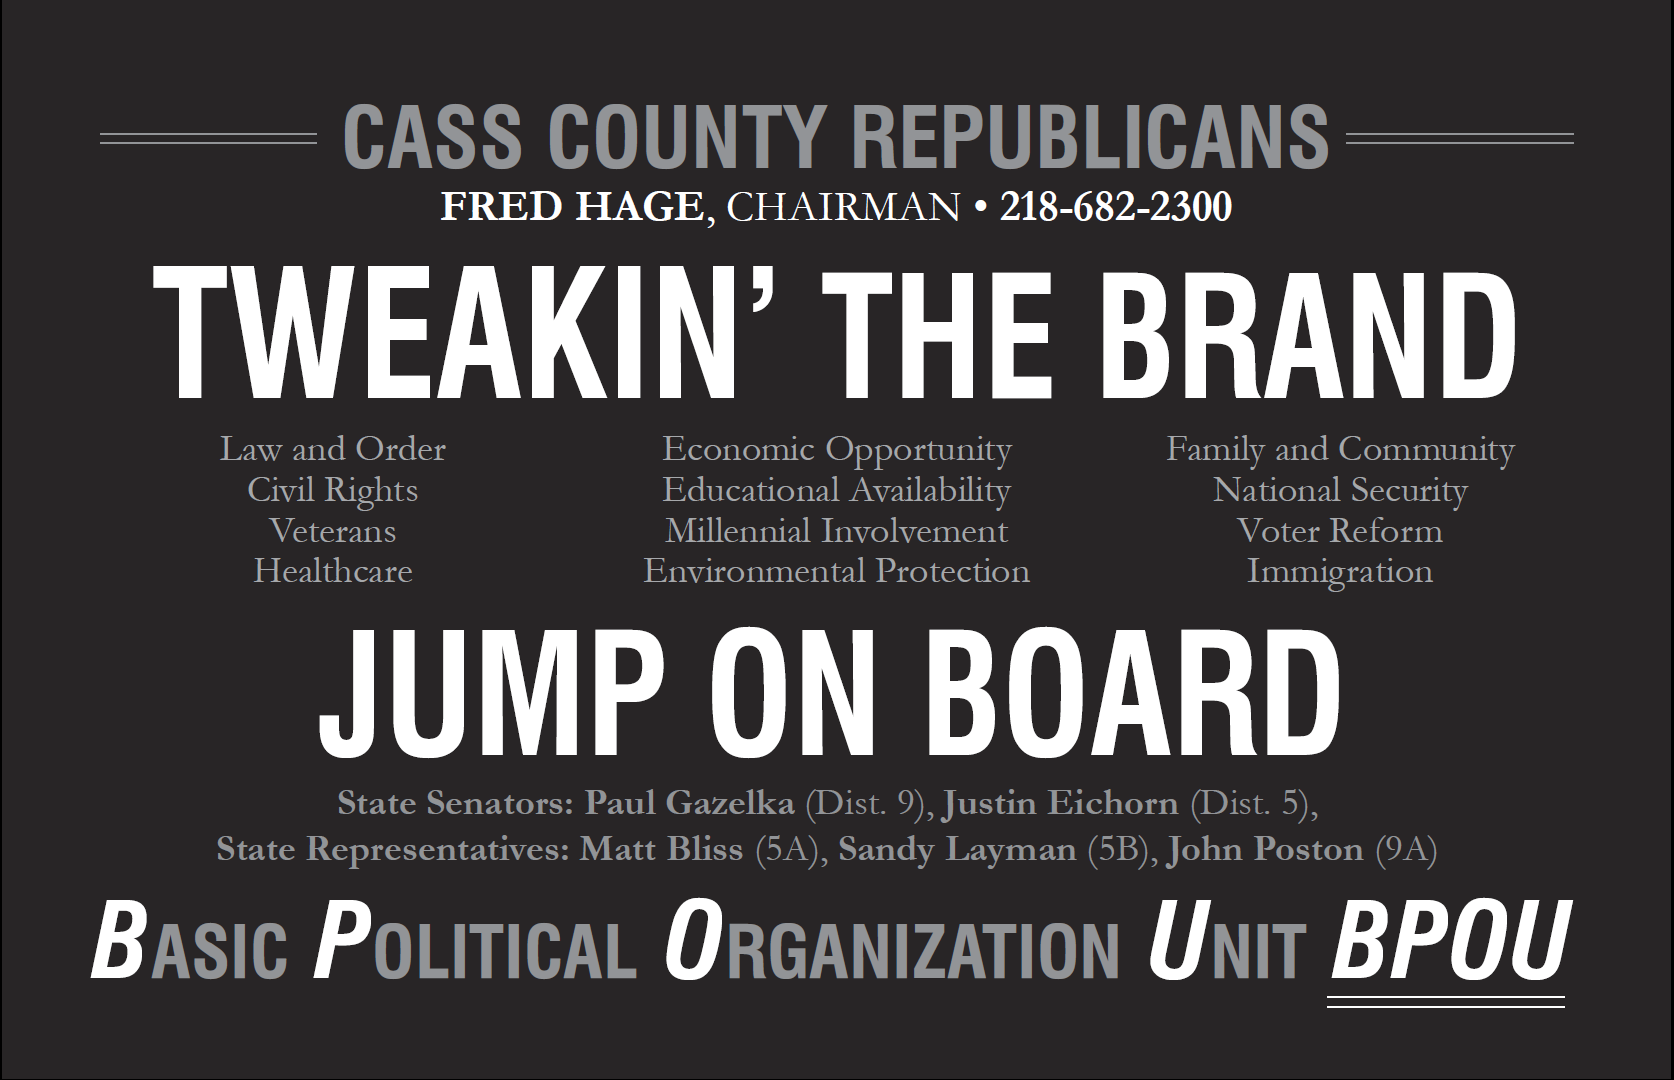 Cass County Republicans